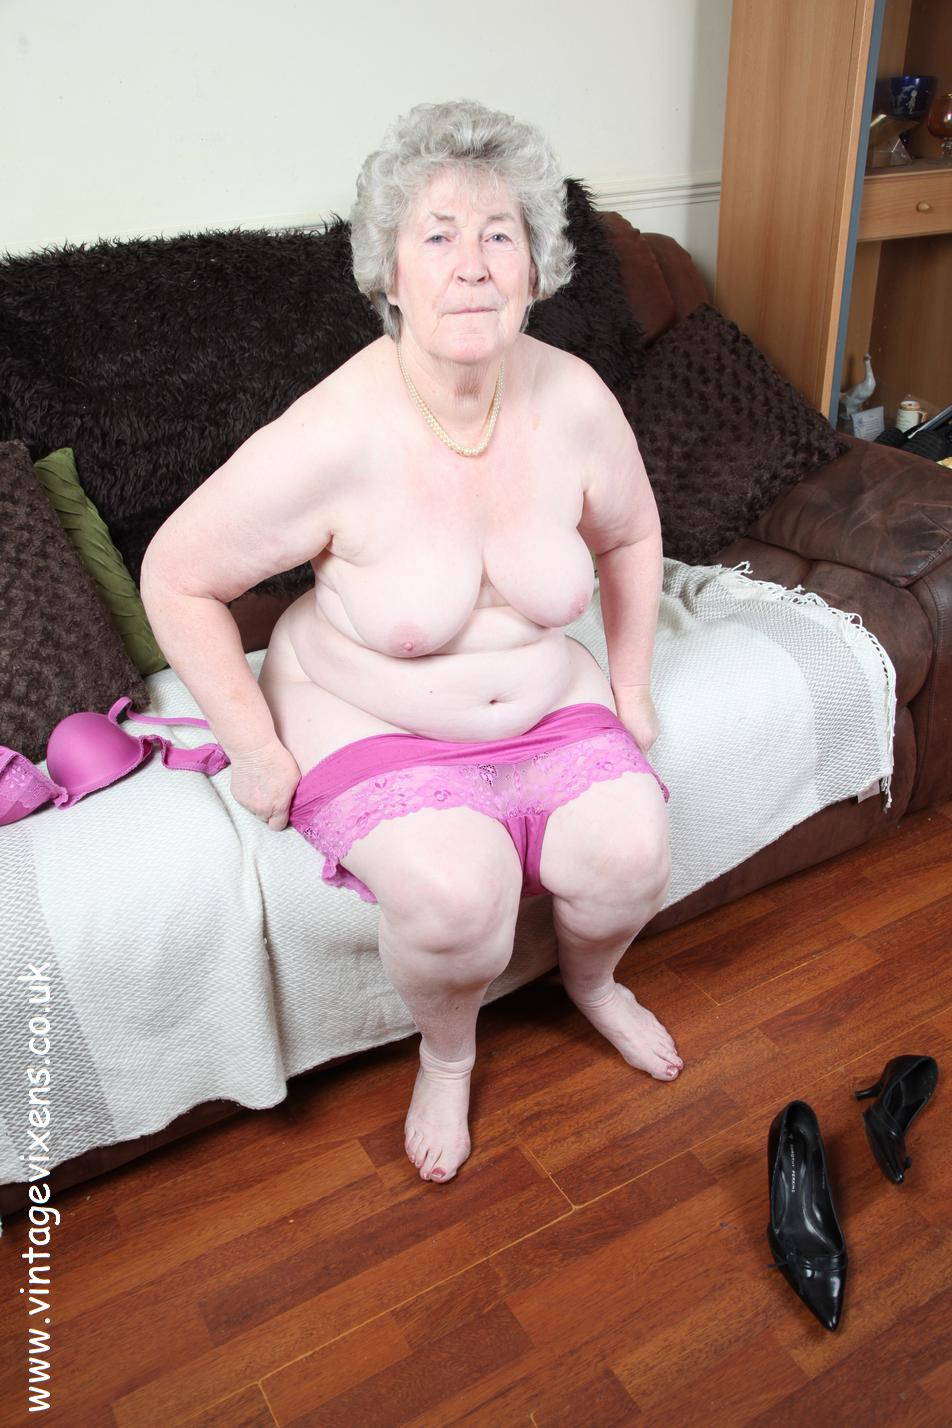 Archive Of Old Women Granny Changed Panties-4071